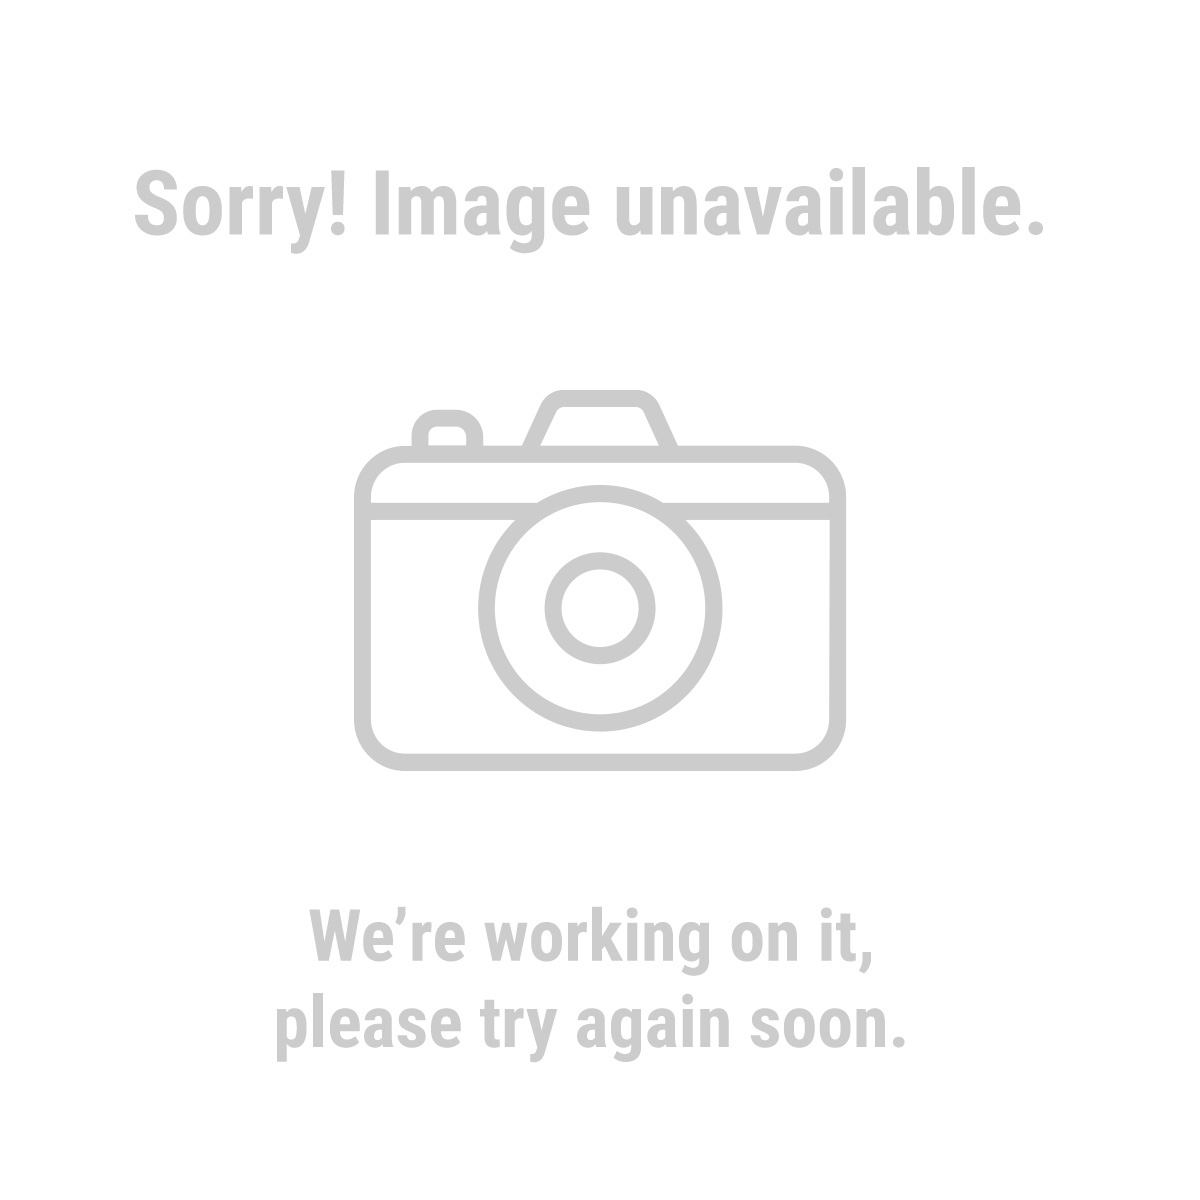 Haul Master Automotive 37510 Heavy Duty Trailer Dolly